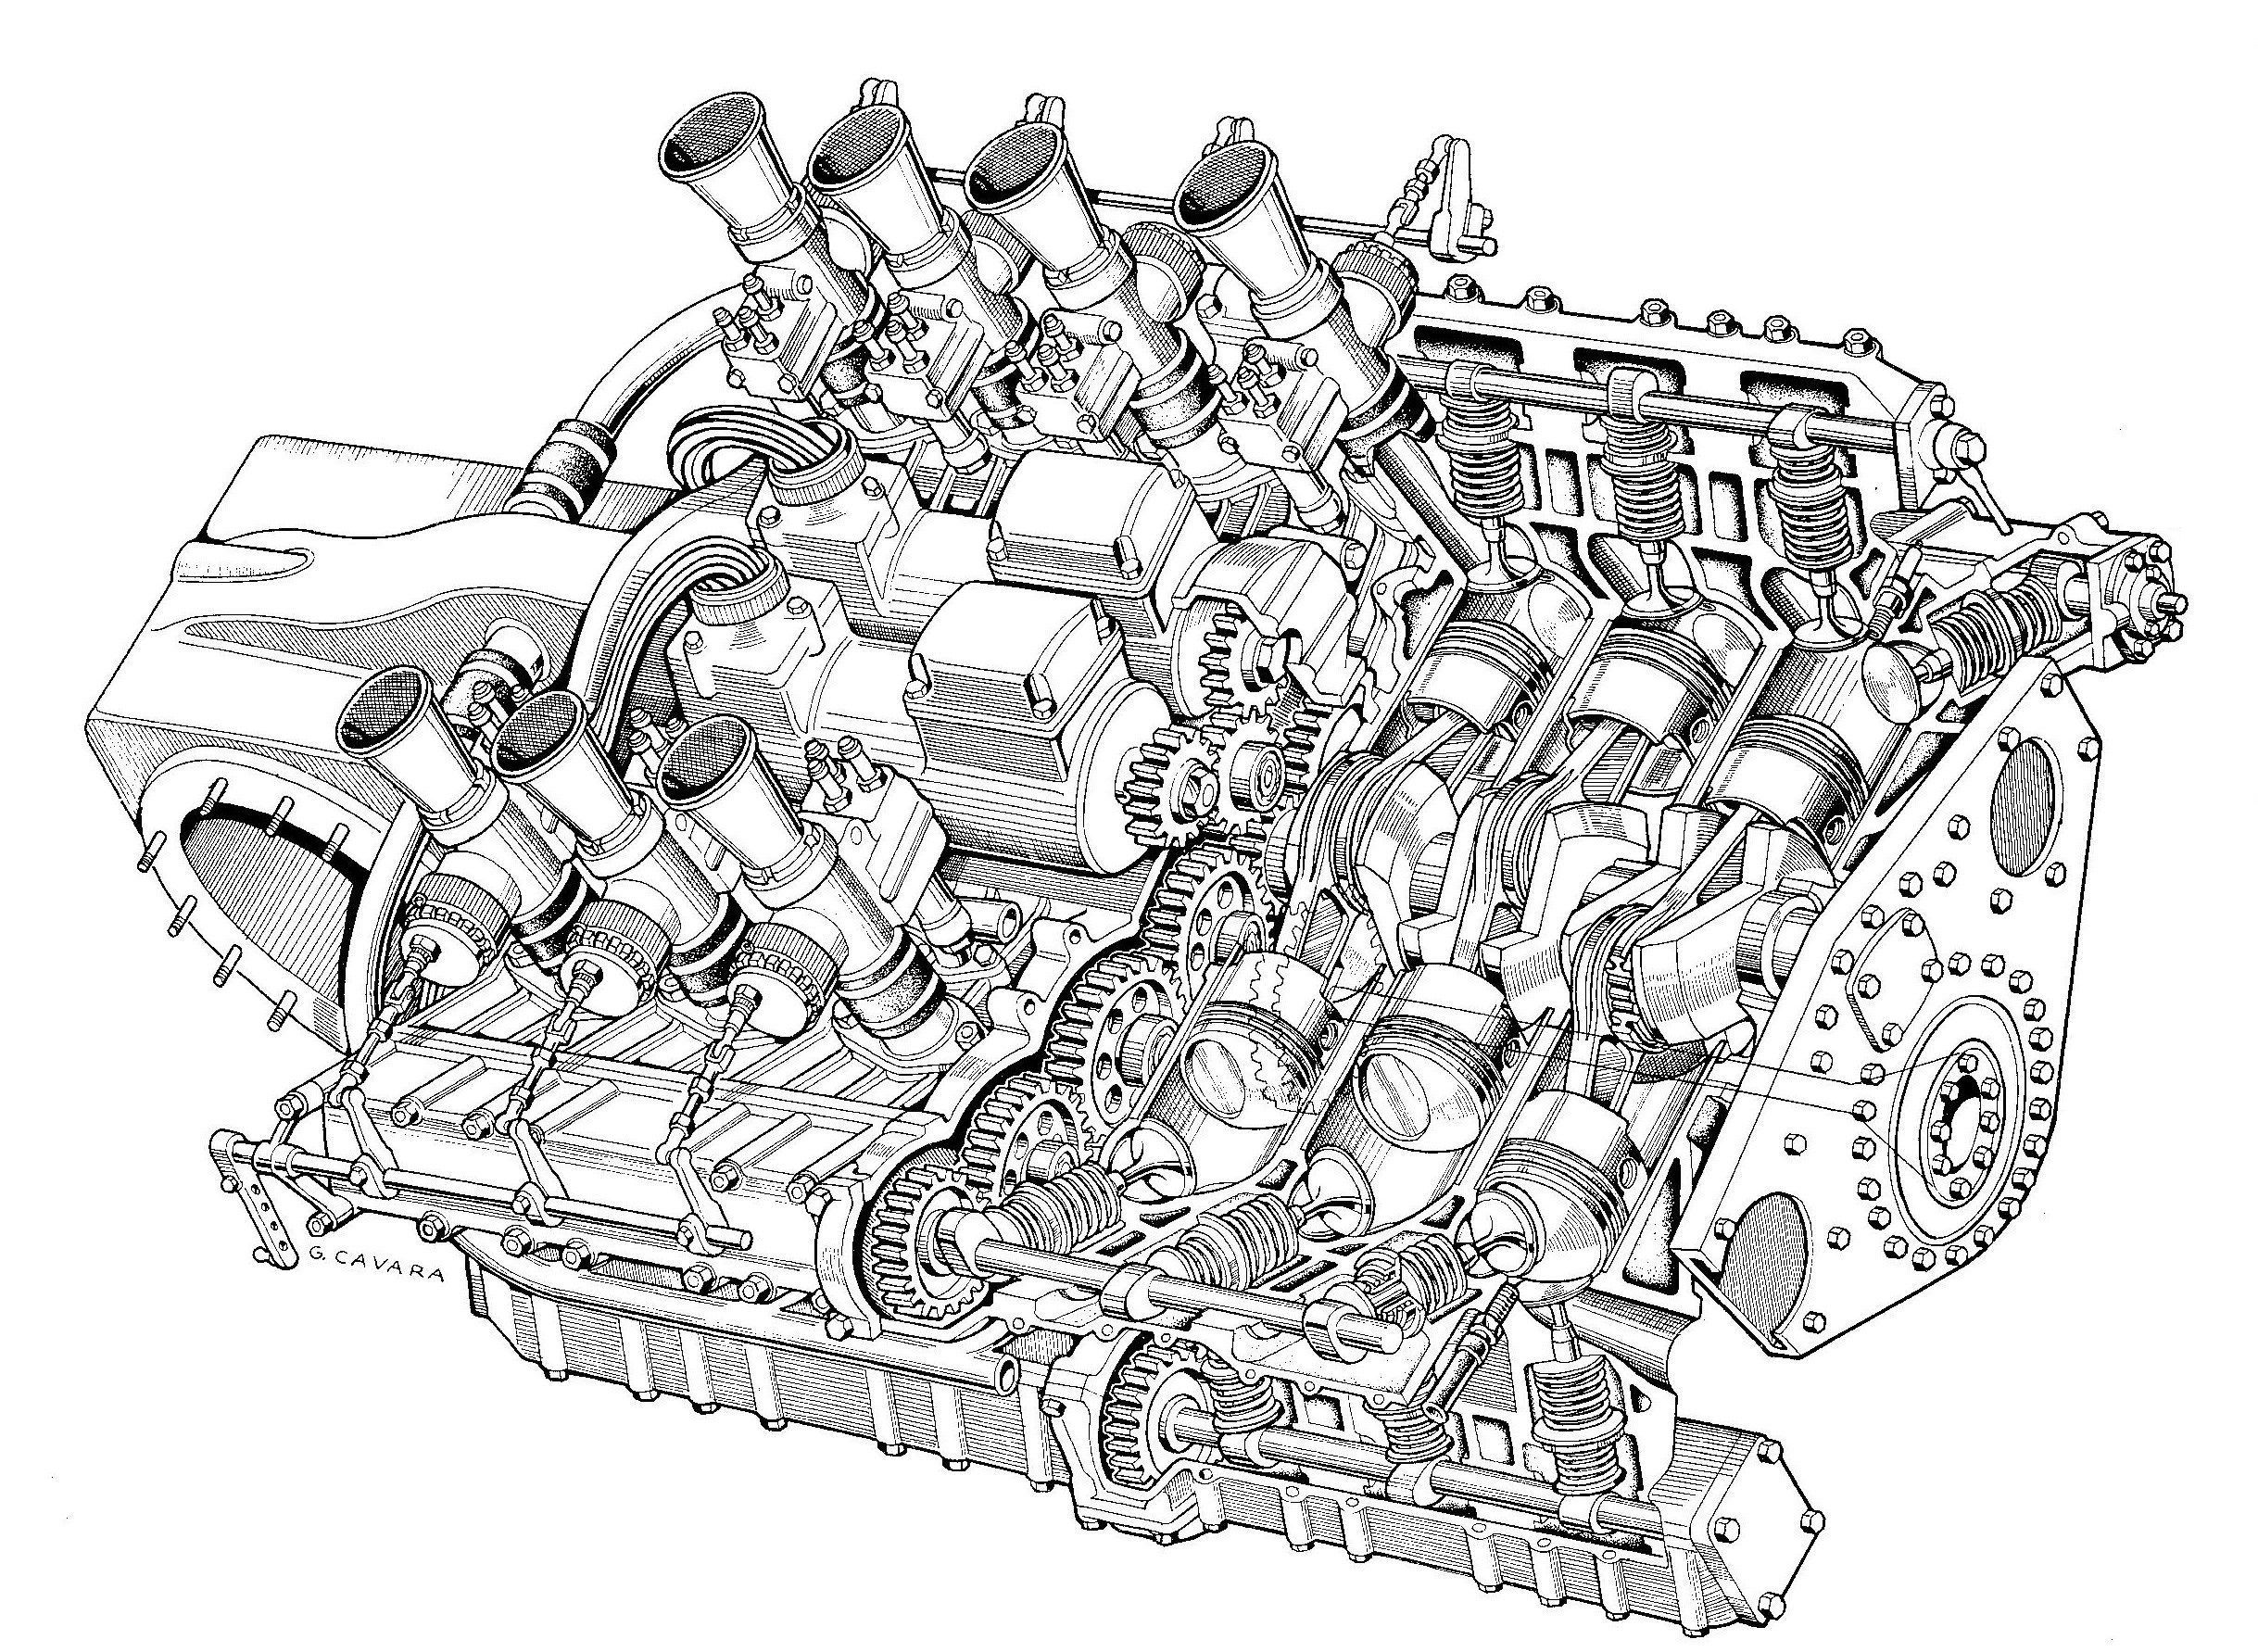 small resolution of 2 500cc flat 12 alfa romeo engine for the alfetta 160 project of 1952 illustrated by g iovanni cavara